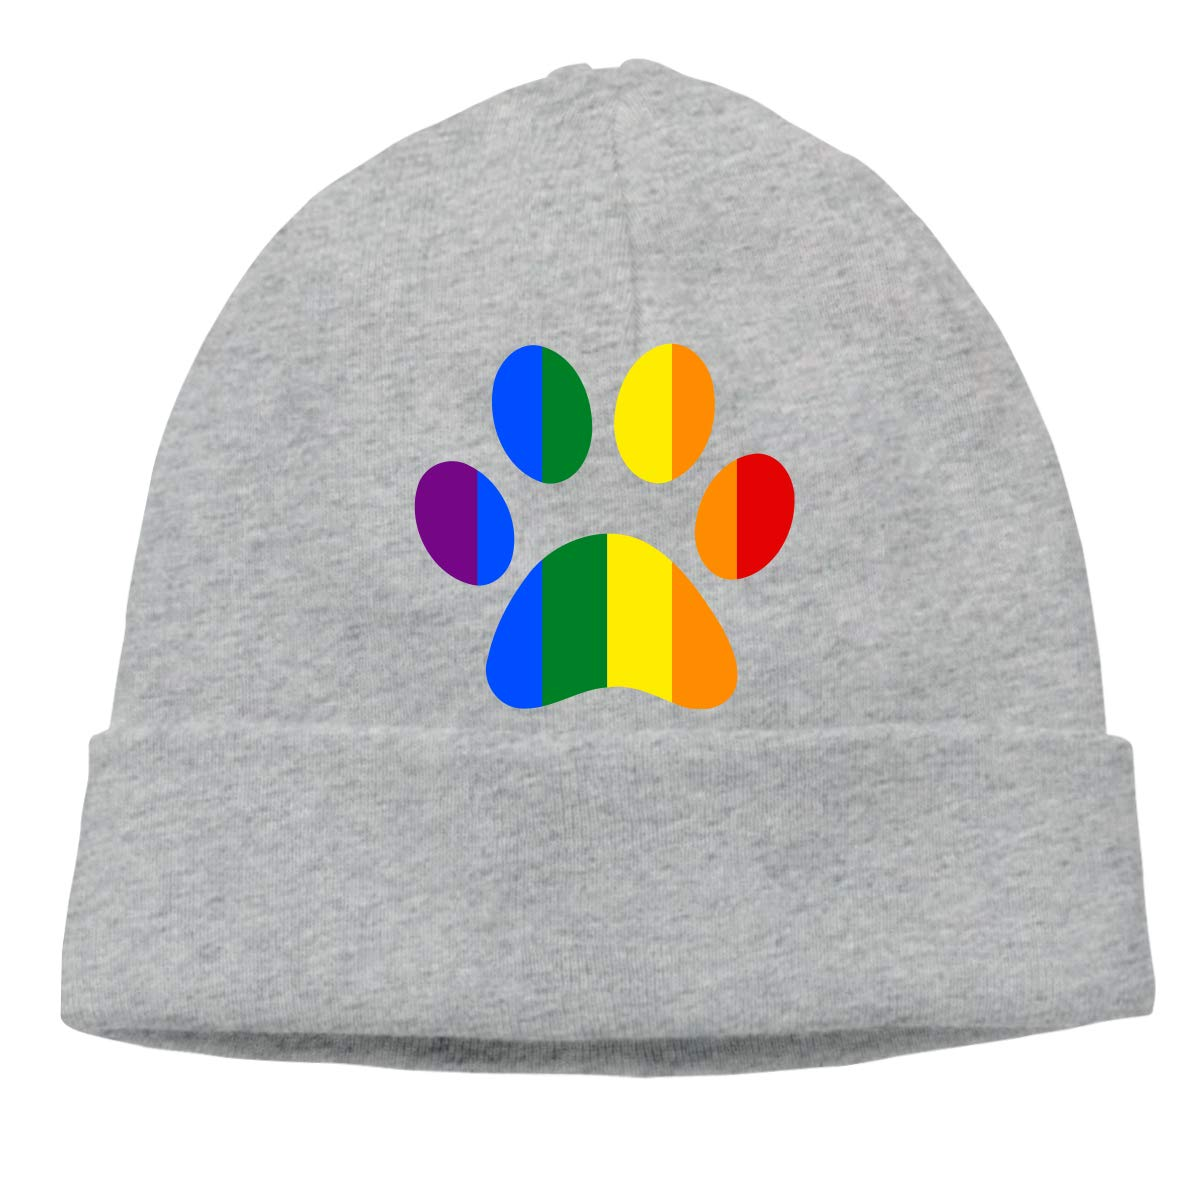 Beanie Hat LGBT Paw Pride Warm Skull Caps for Men and Women